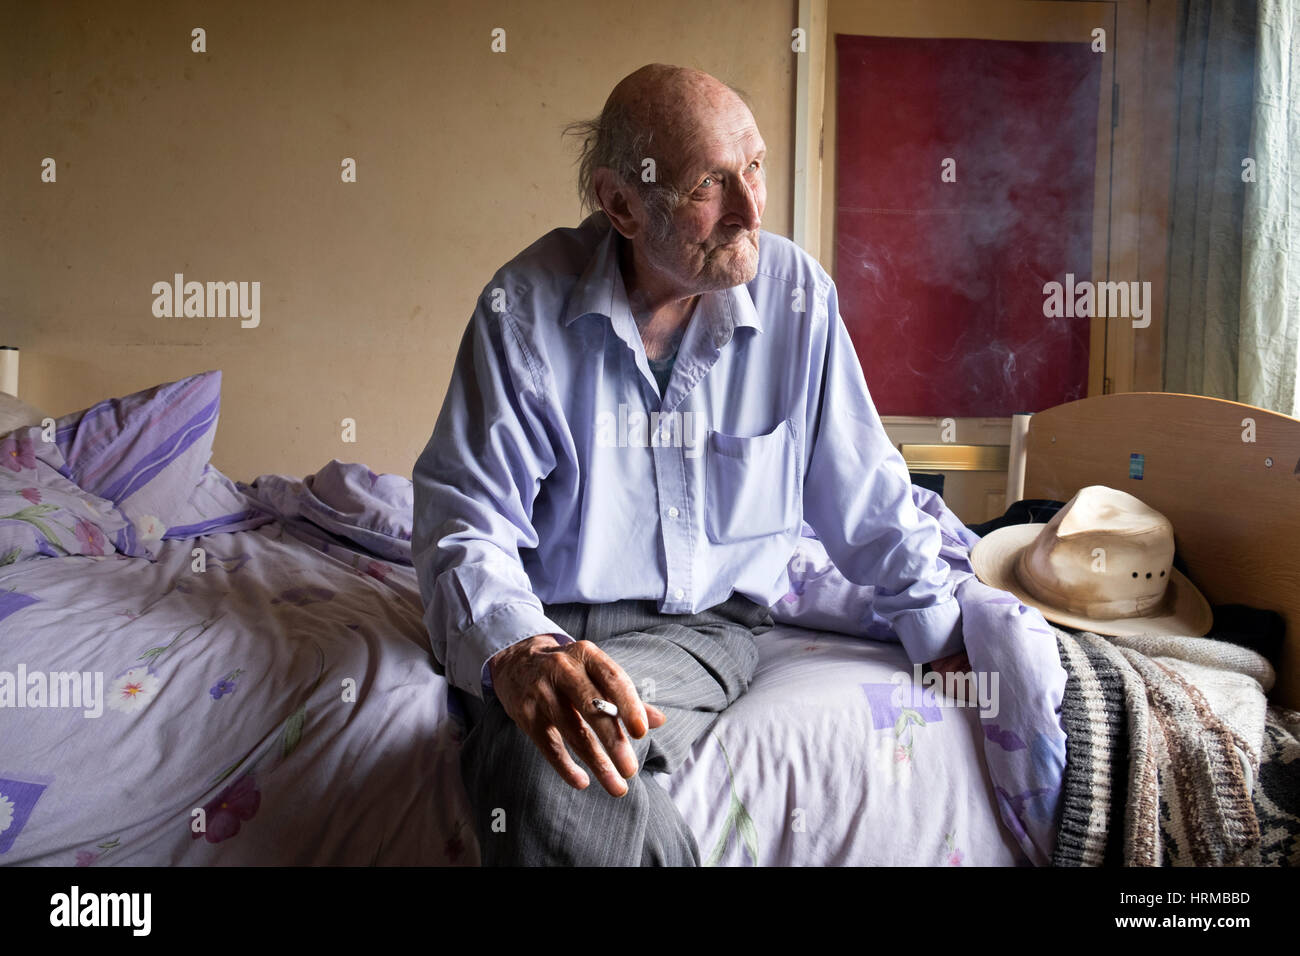 Impoverished bedridden man - Stock Image